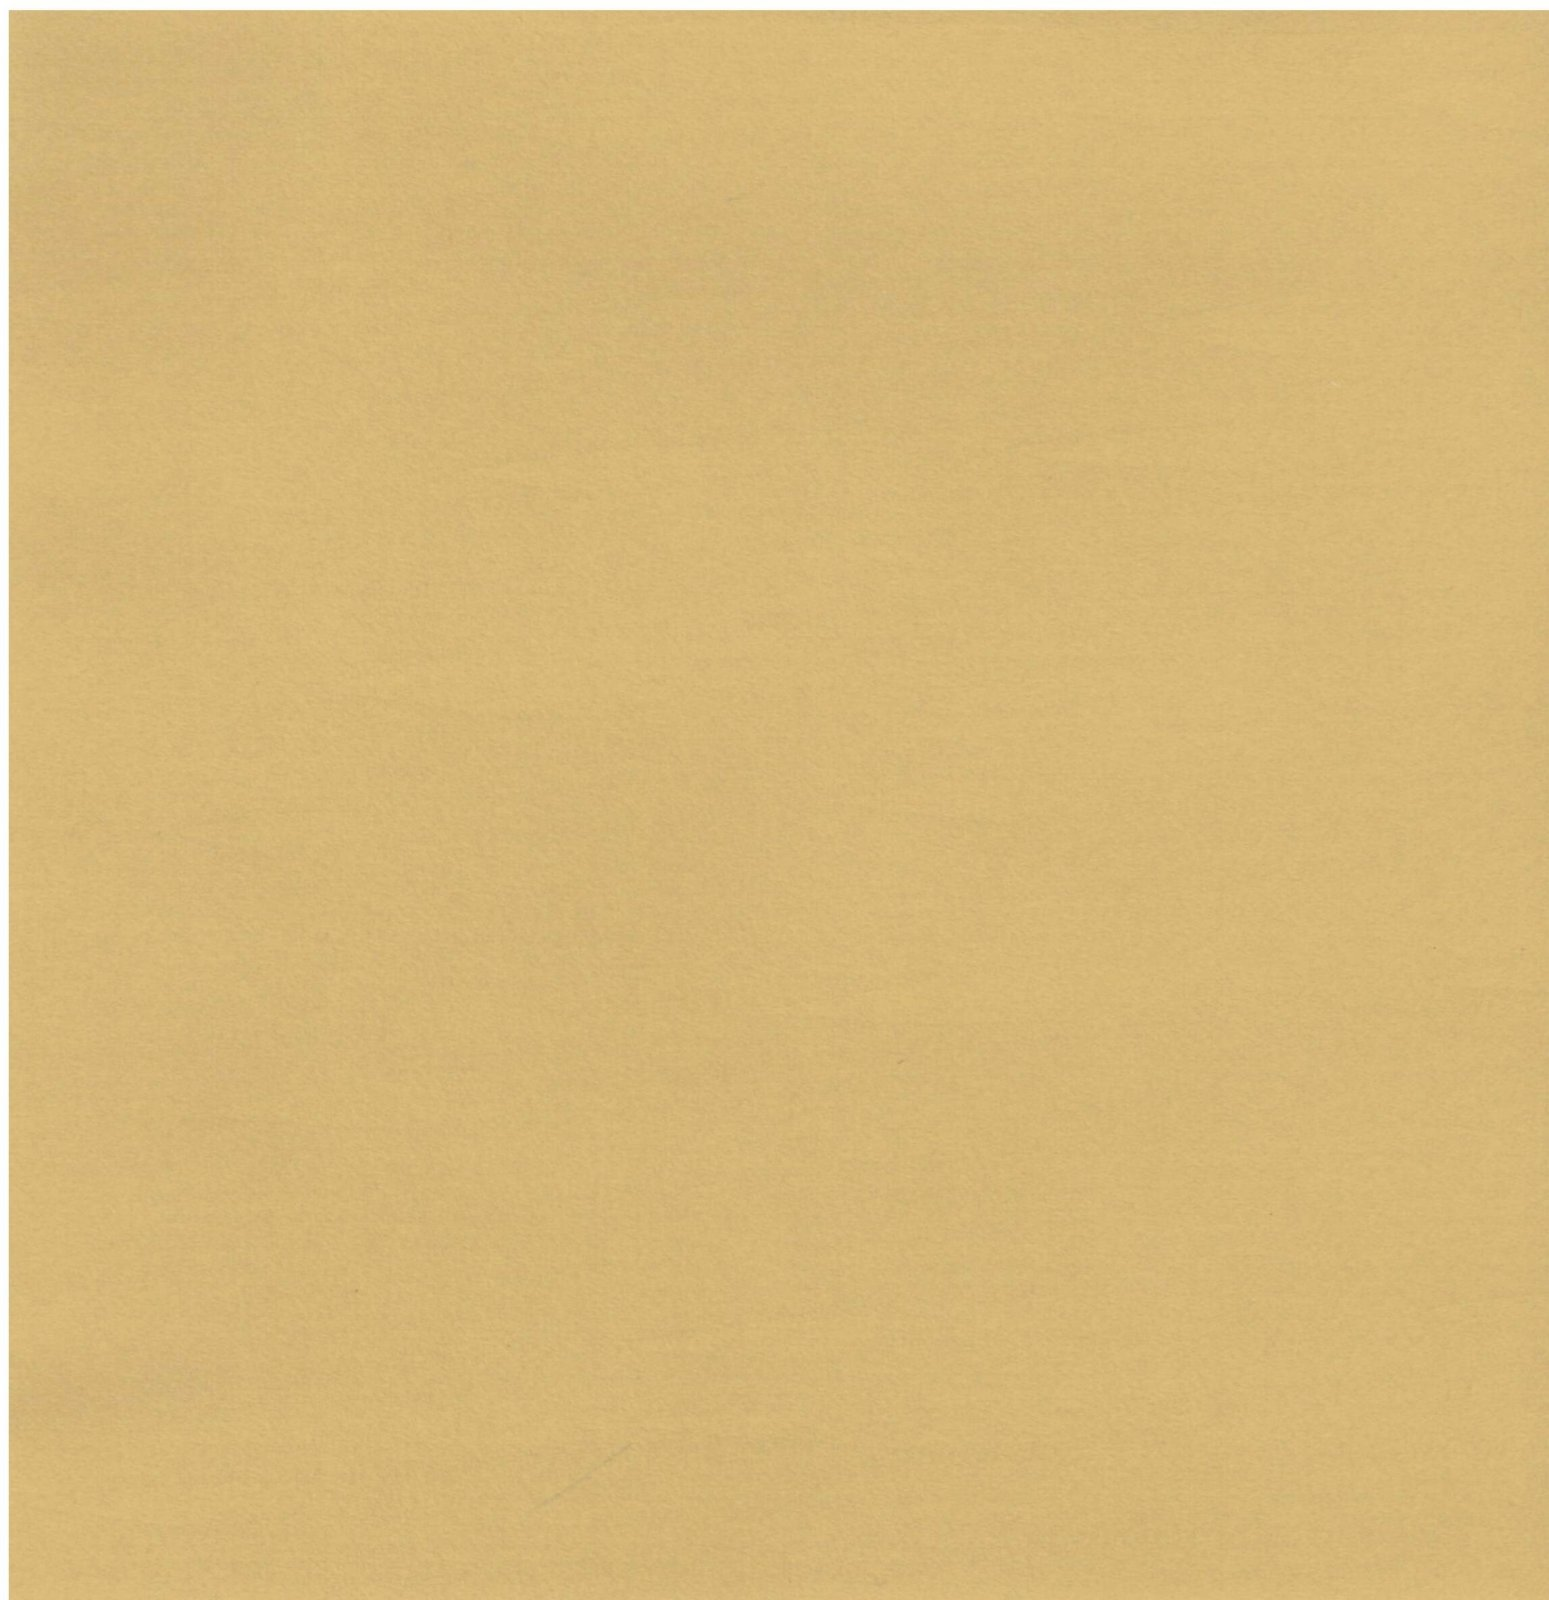 AC Cardstock 12X12 doux/lisse Cassonade 80lbs - Smooth Cardstock, Brown Sugar Item # 71768